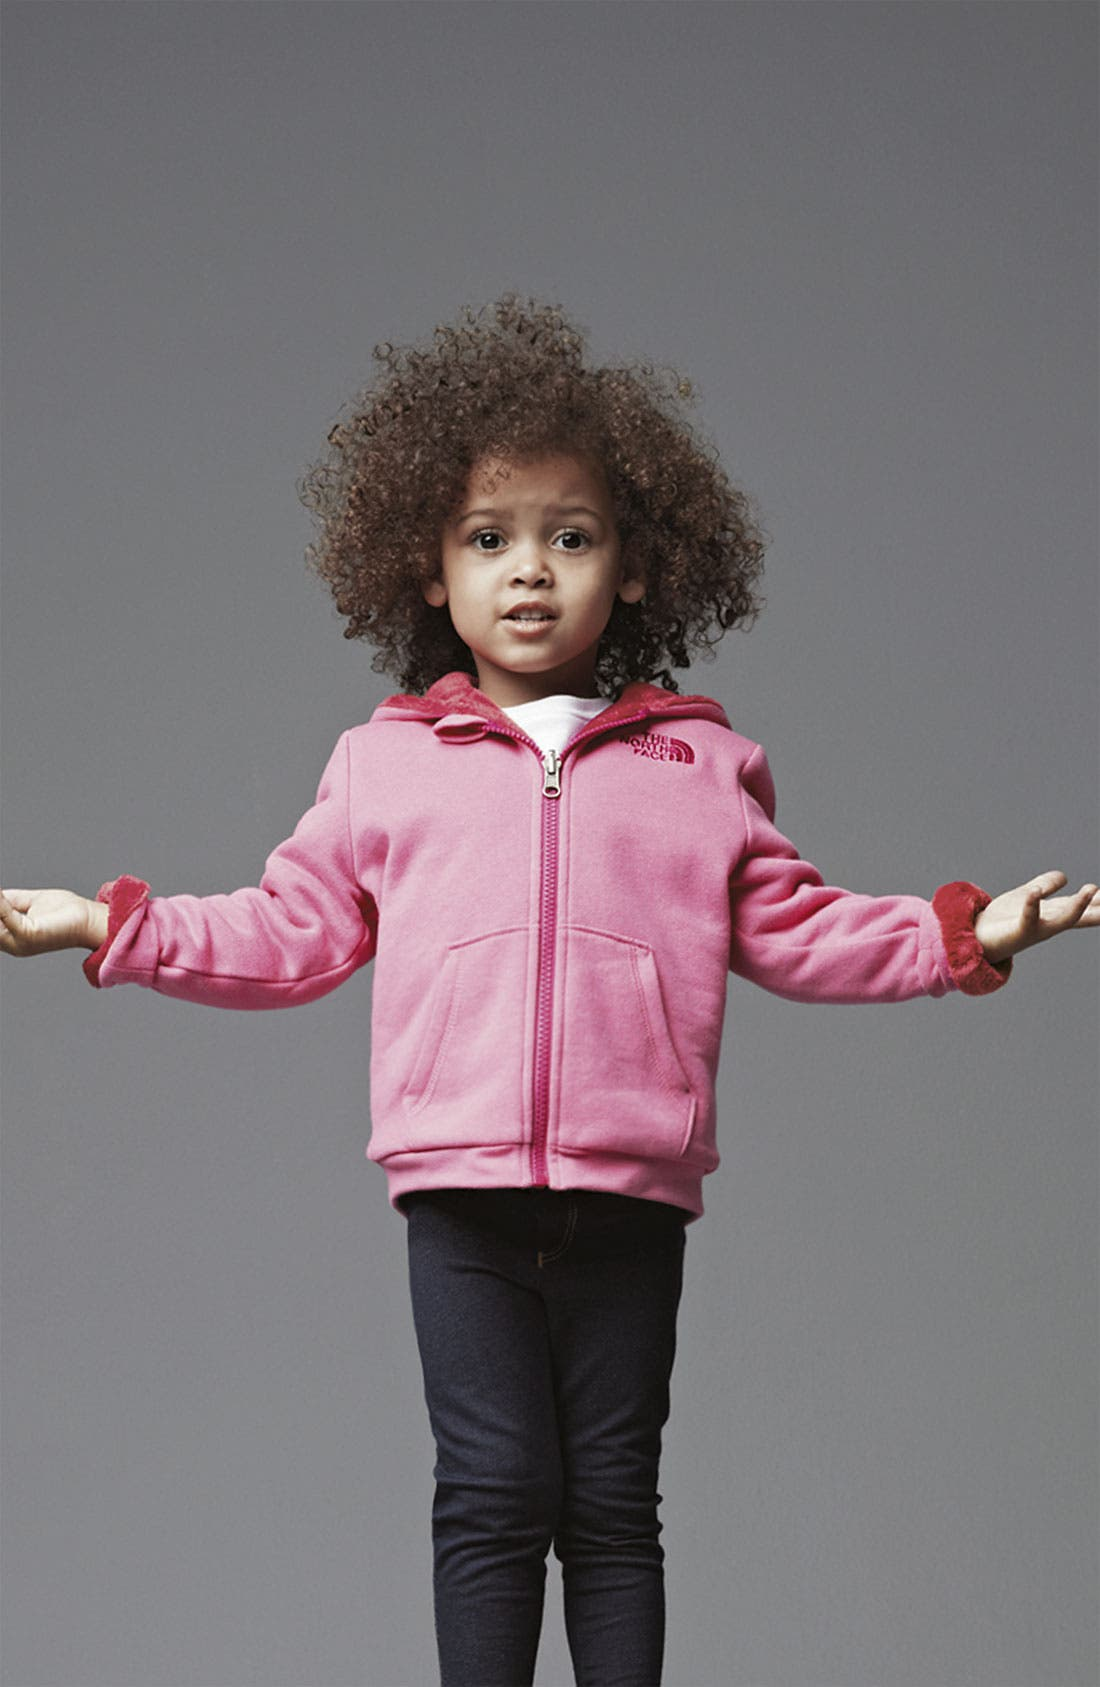 Main Image - The North Face Hoodie & United Colors of Benetton Jeggings(Infant)